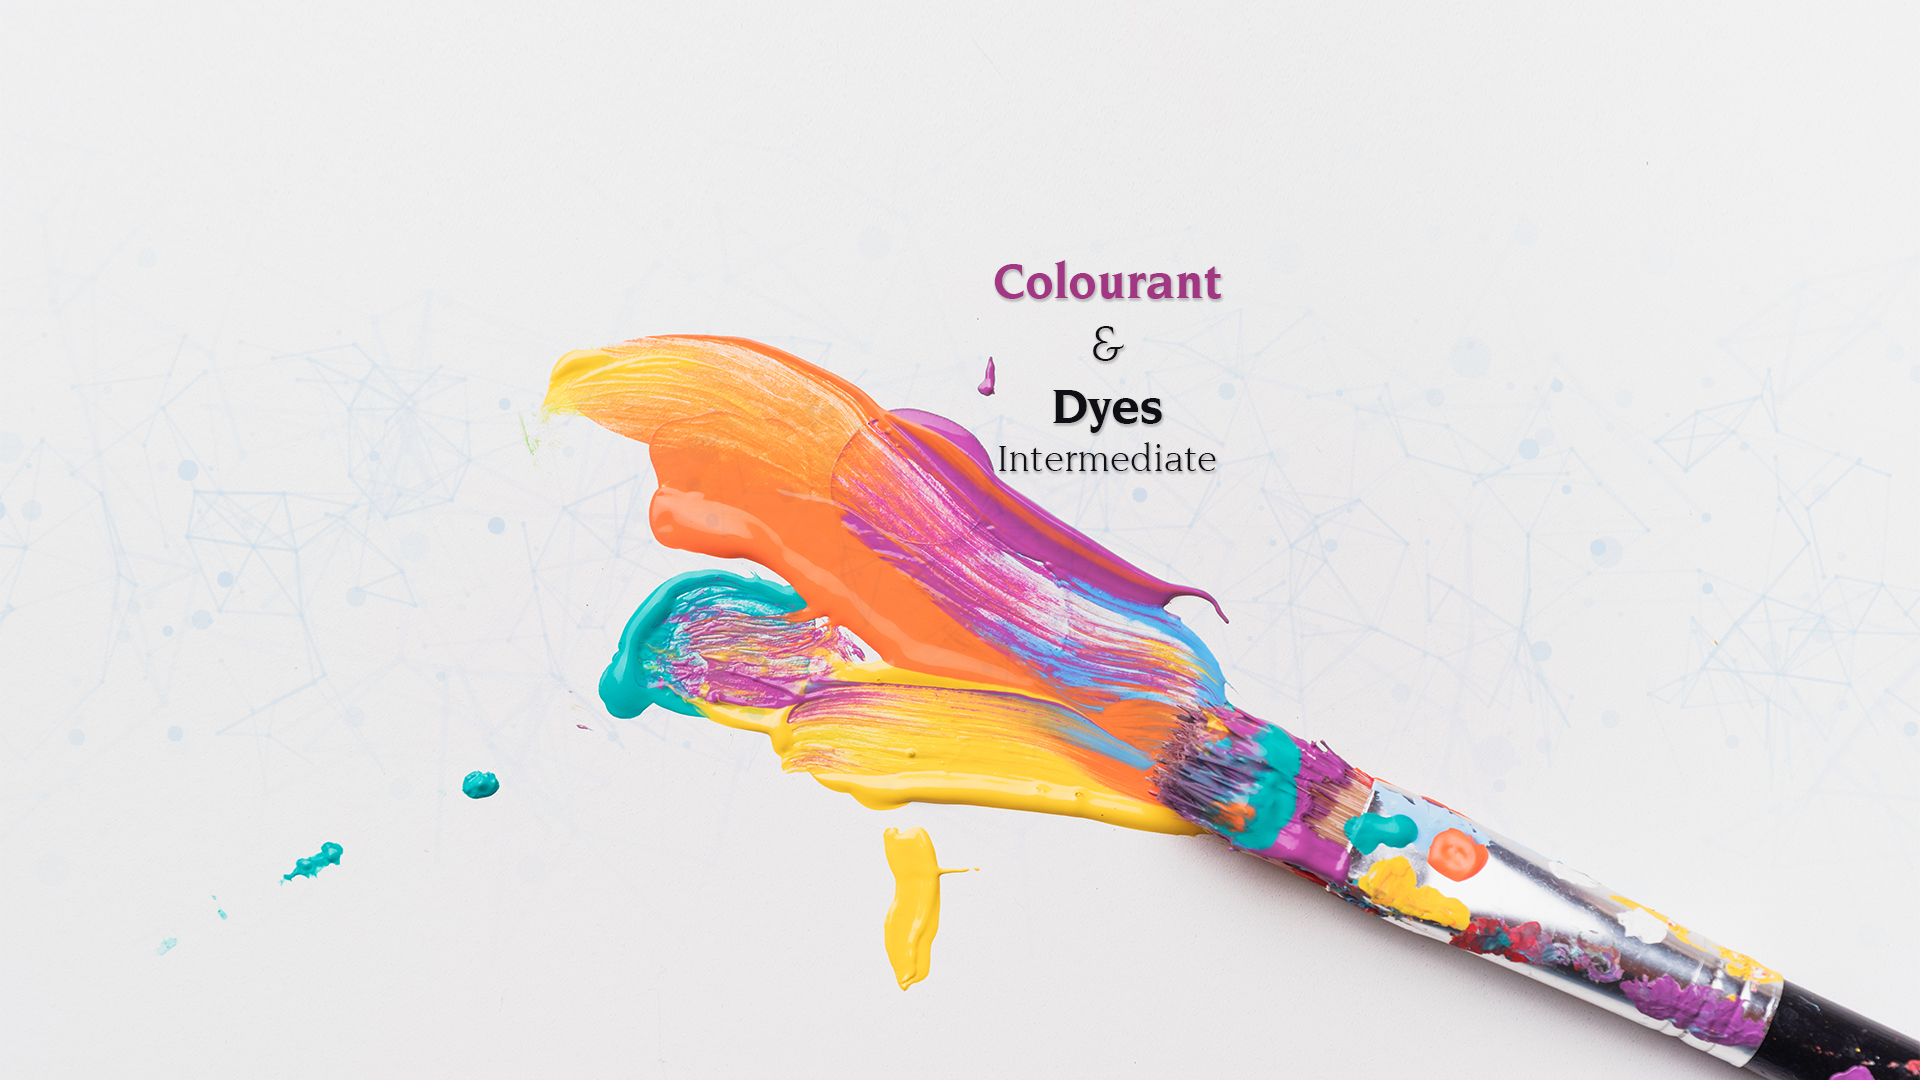 Colorants Dye Intermediate Manufacturer